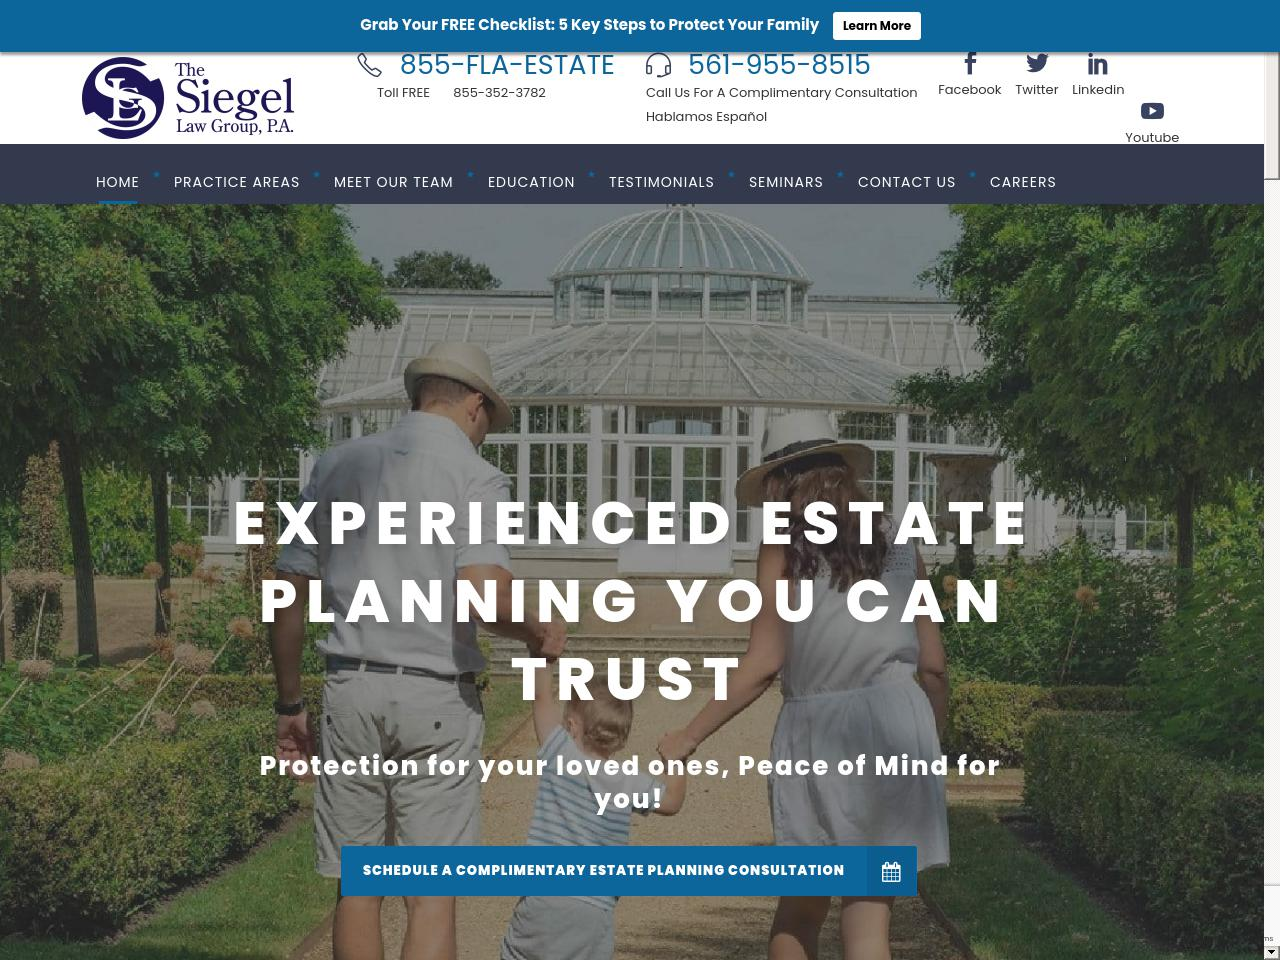 The Siegel Law Group, P.A. - Boca Raton FL Lawyers